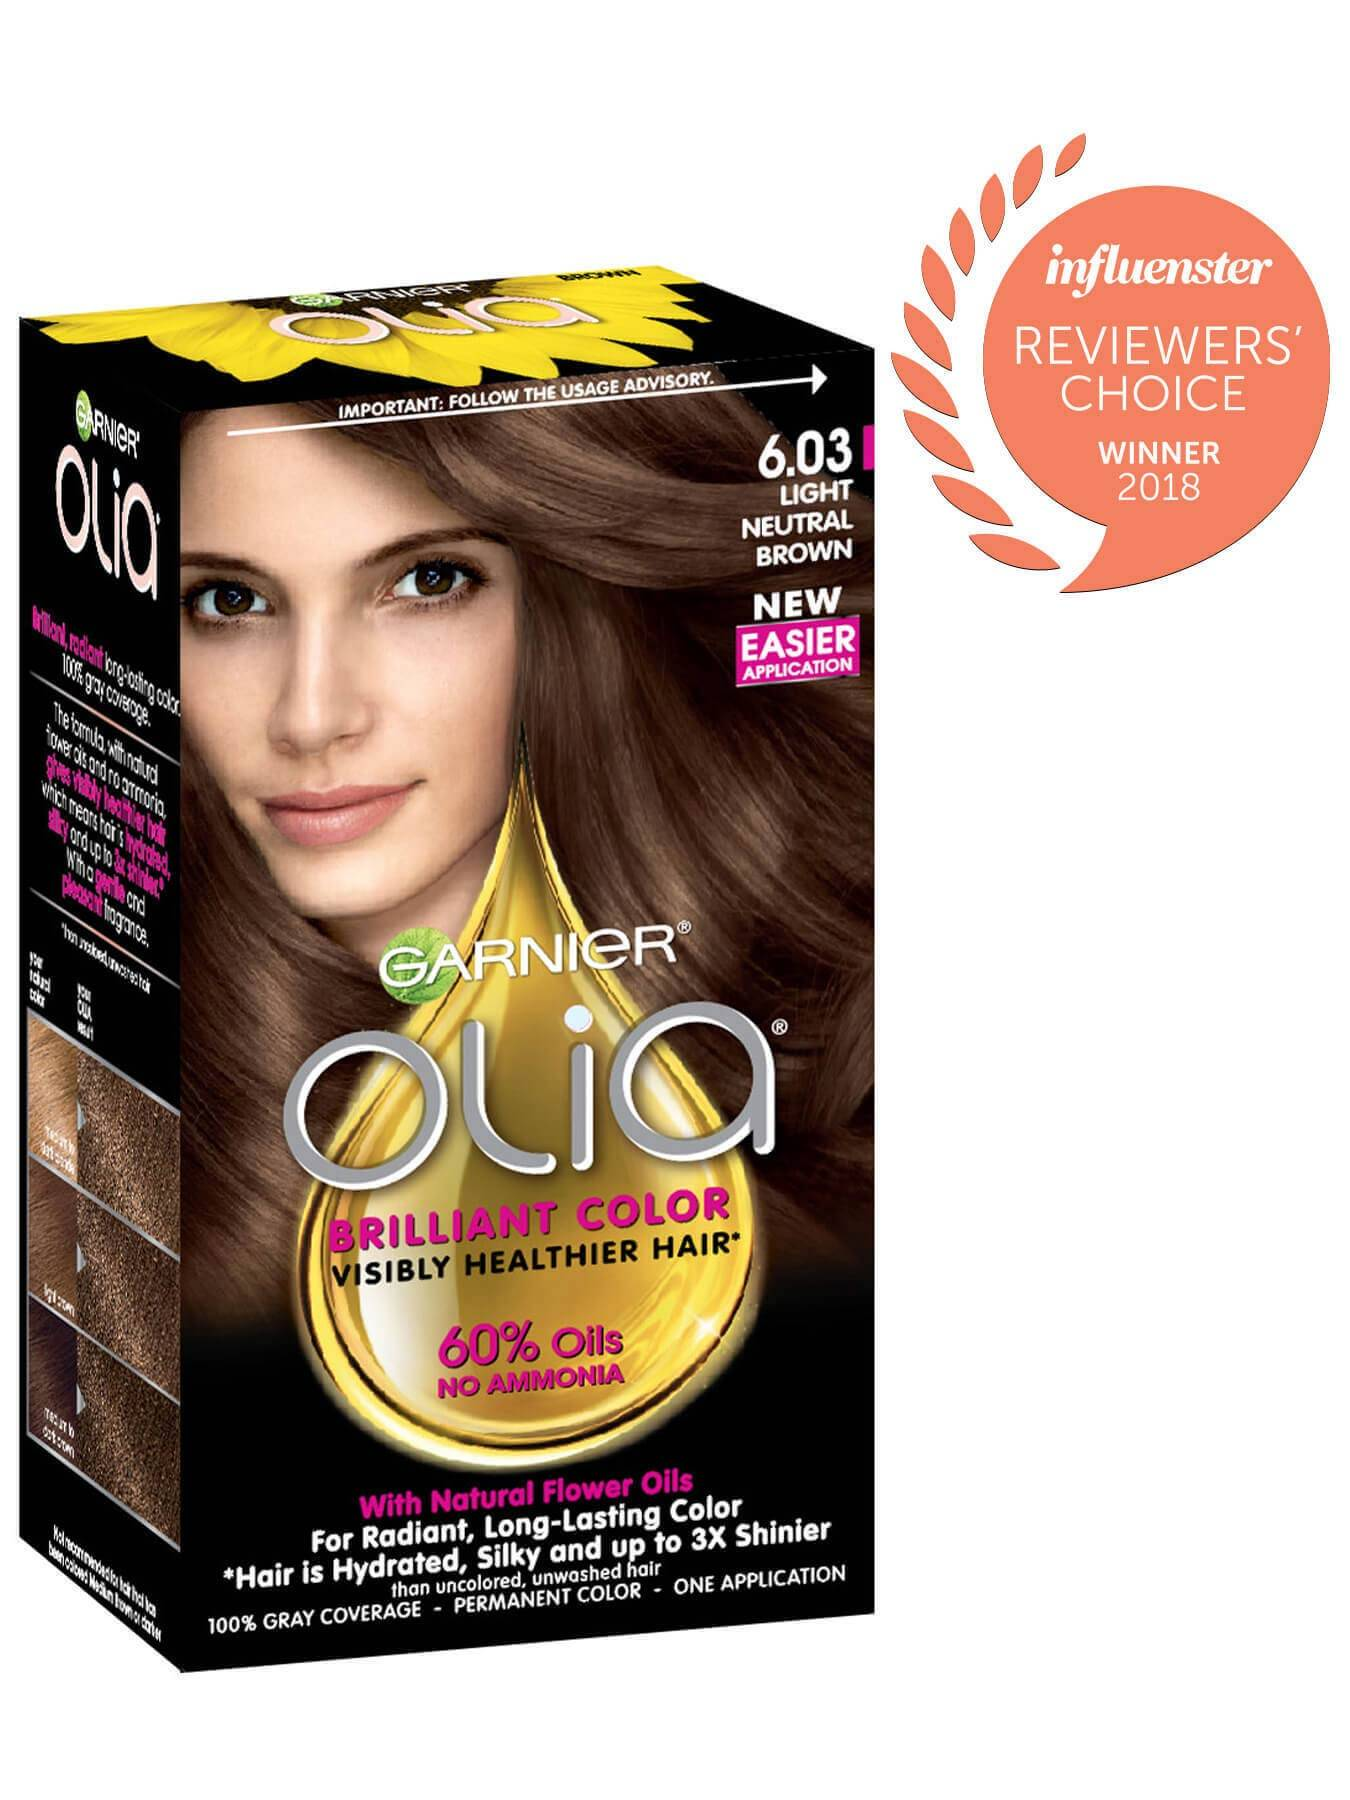 Garnier Olia Packshot Award 6.03 Light Neutral Brown